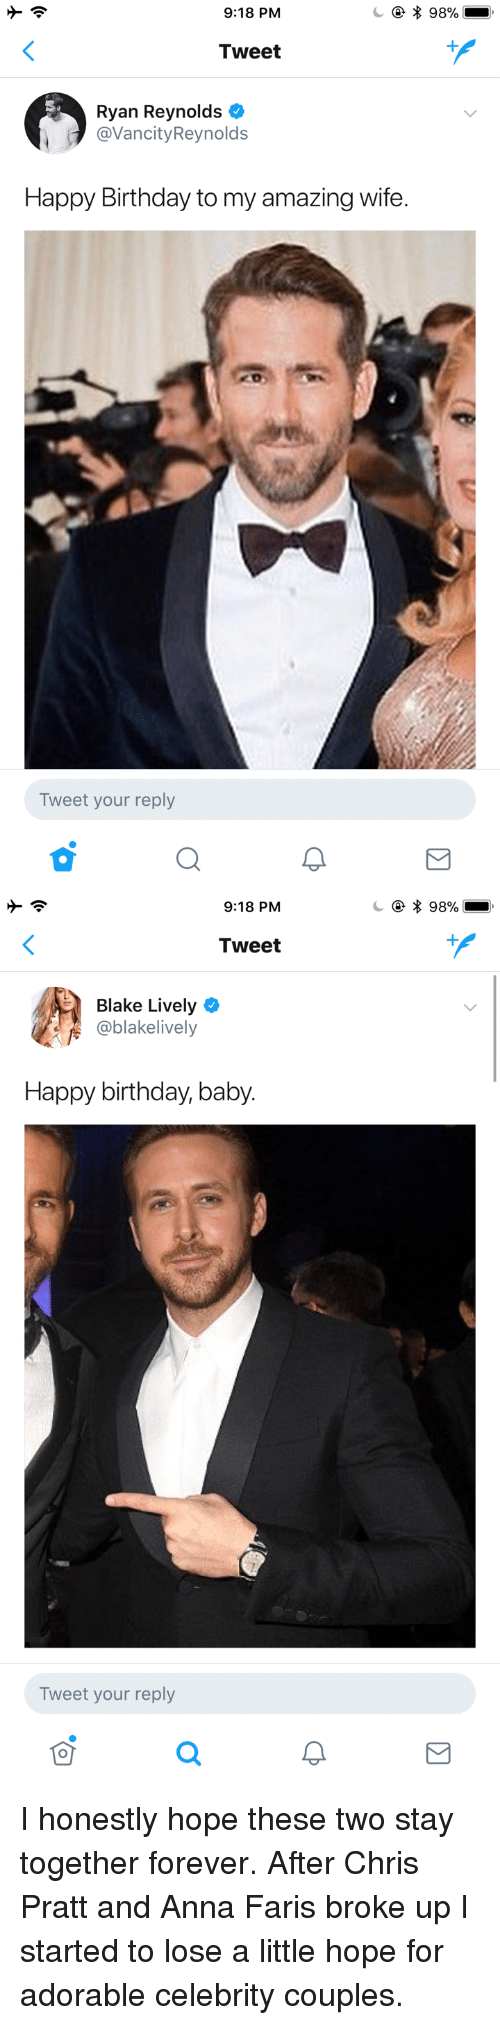 Anna, Birthday, and Chris Pratt: 9:18 PM  * 98%  Tweet  Ryan Reynolds  @VancityReynolds  Happy Birthday to my amazing wife.  Tweet your reply   9:18 PM  * 98%  Tweet  Blake Lively  @blakelively  Happy birthday, baby.  Tweet your reply <p>I honestly hope these two stay together forever. After Chris Pratt and Anna Faris broke up I started to lose a little hope for adorable celebrity couples.</p>